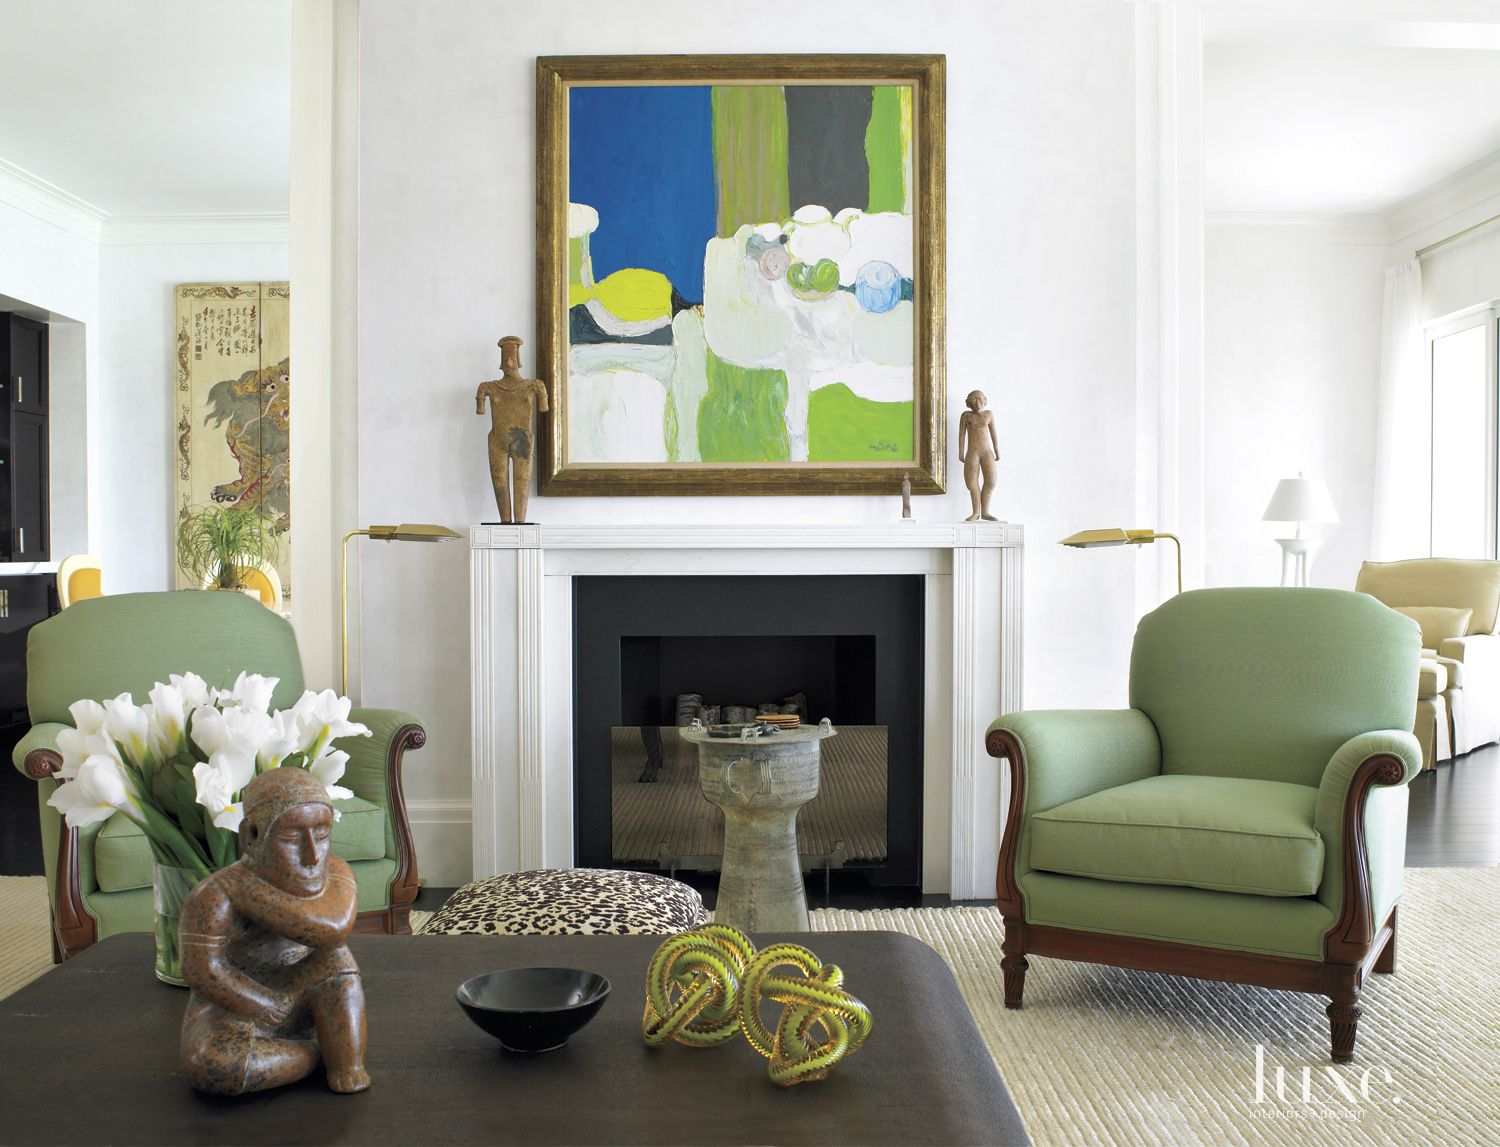 Eclectic White Living Room with Green Chairs